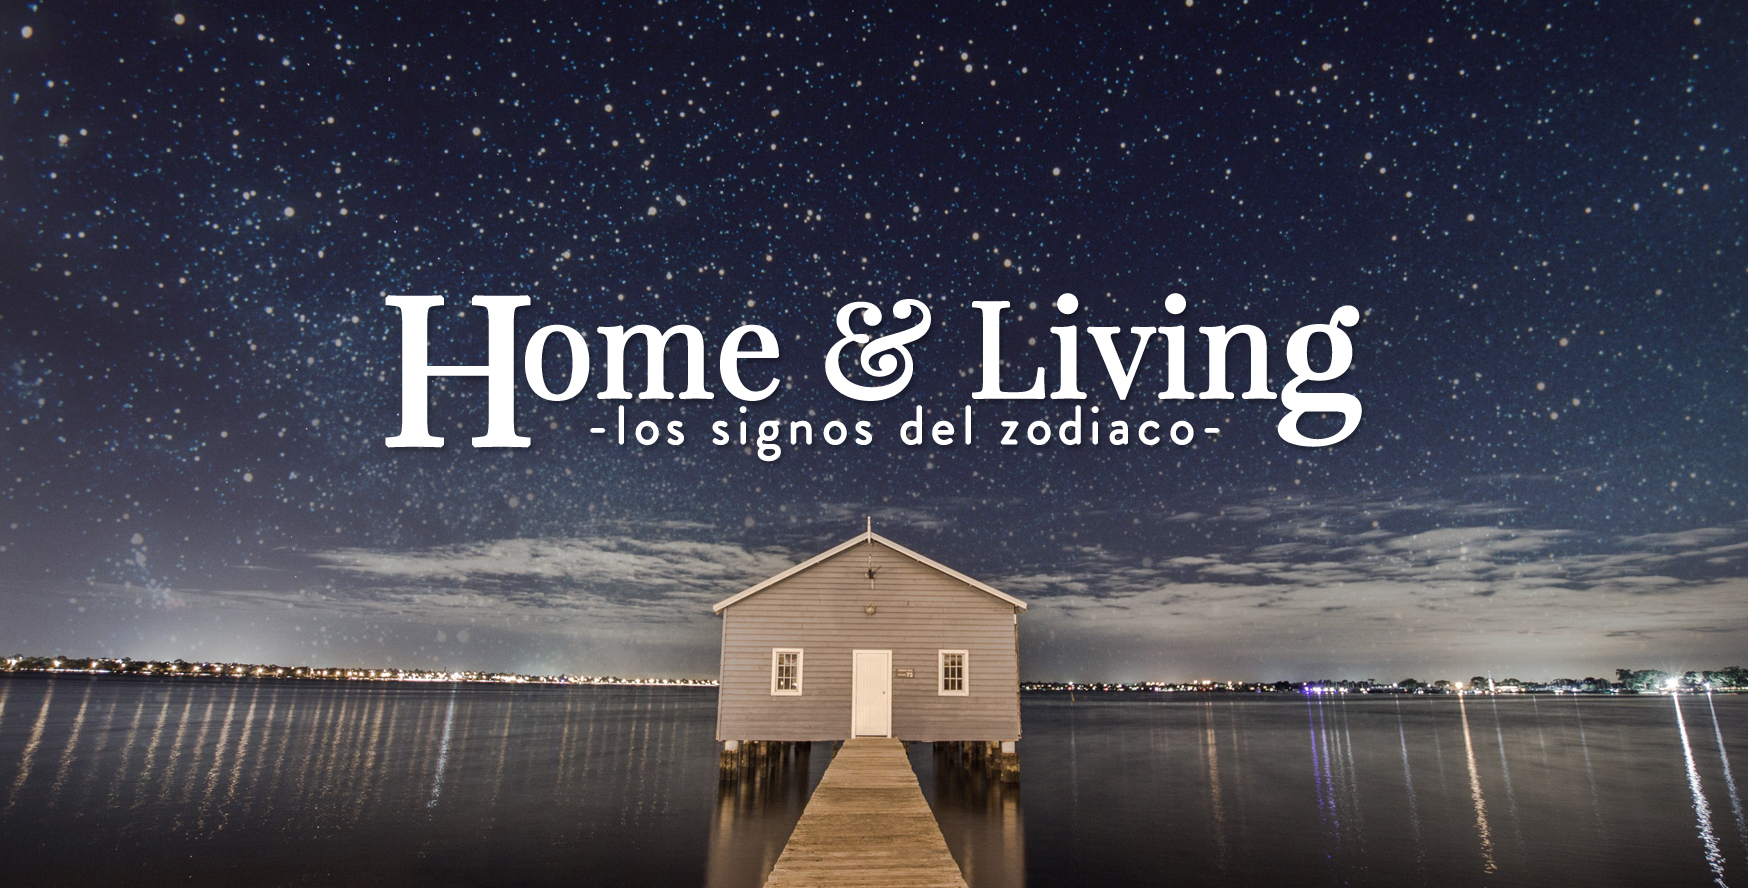 Home-&-living-title